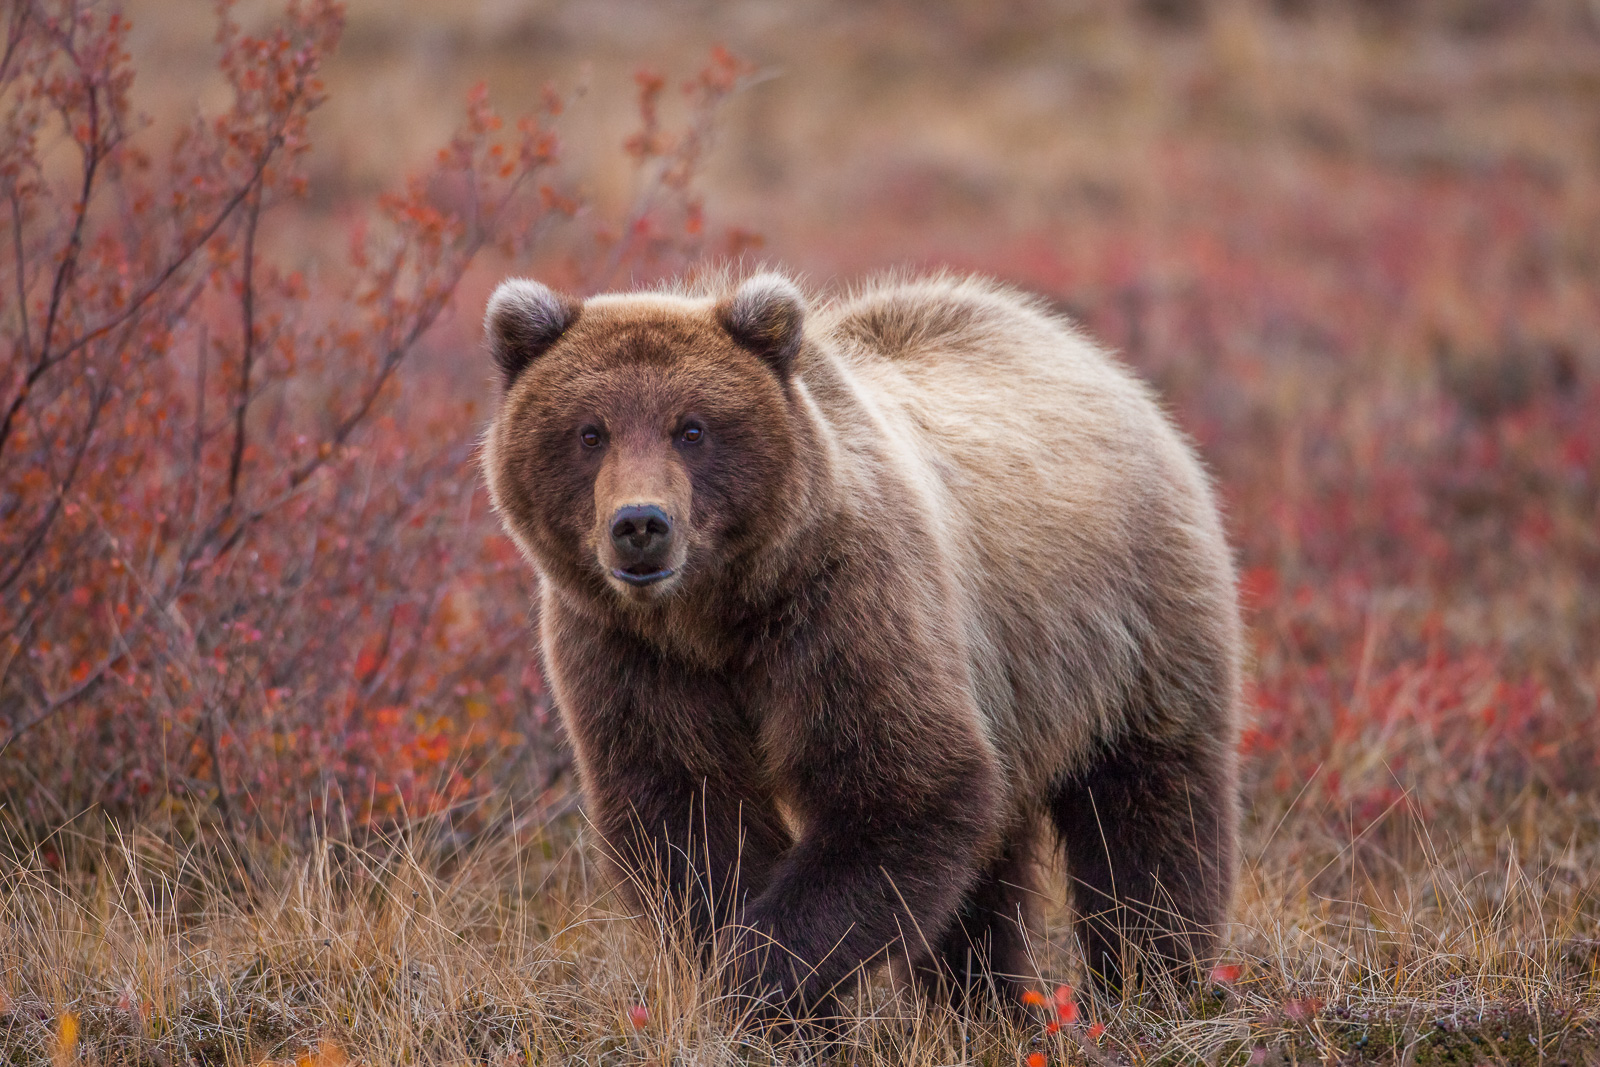 Roaming the tundra during peek autumn foliage in Denali National Park this grizzly hunts ground squirrels.